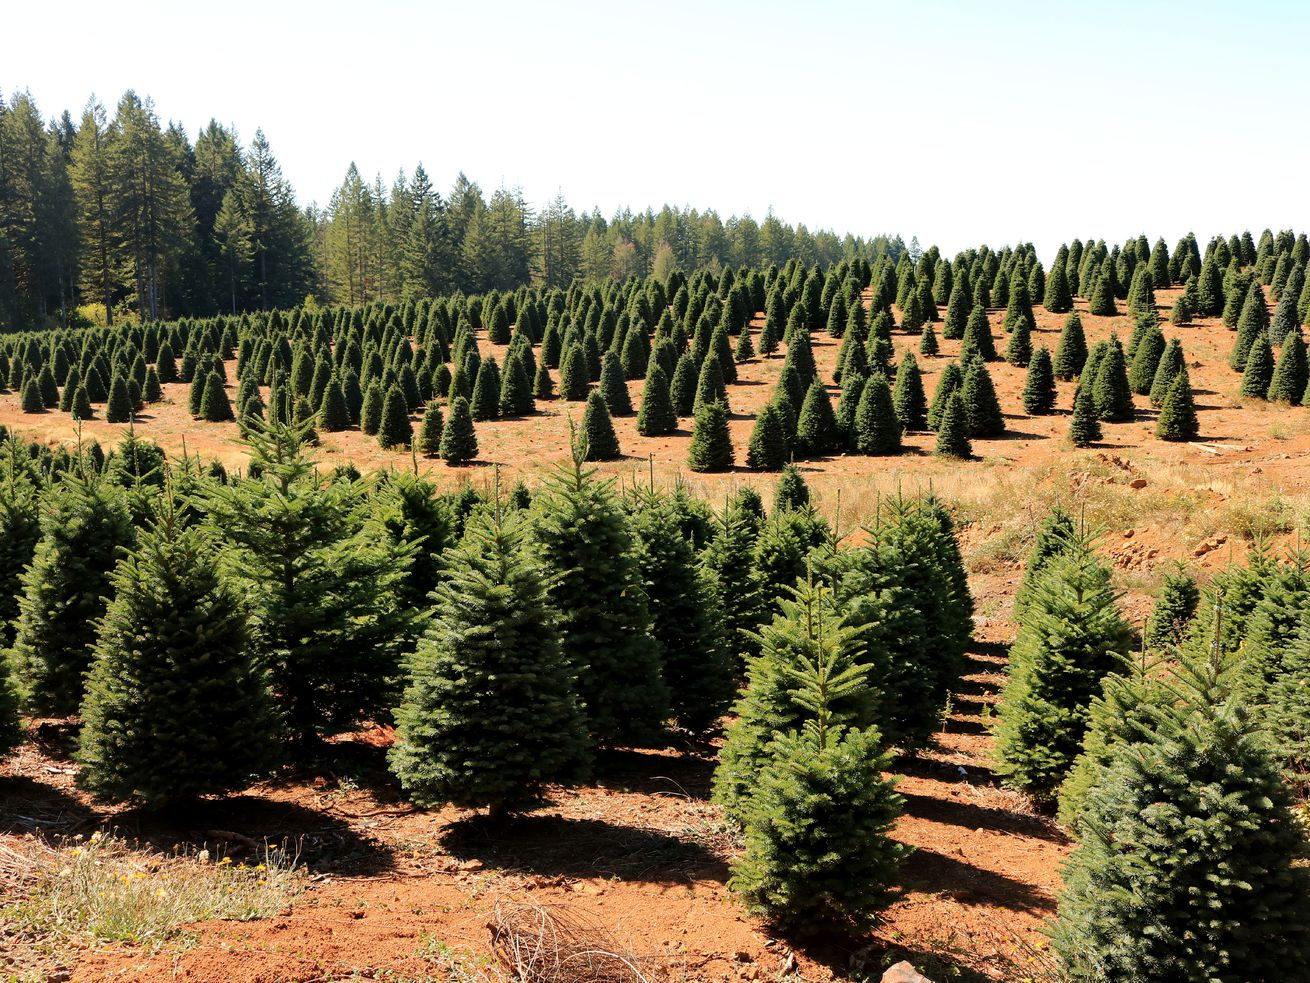 A Christmas tree farm in the Willamette Valley area of West Central Oregon.